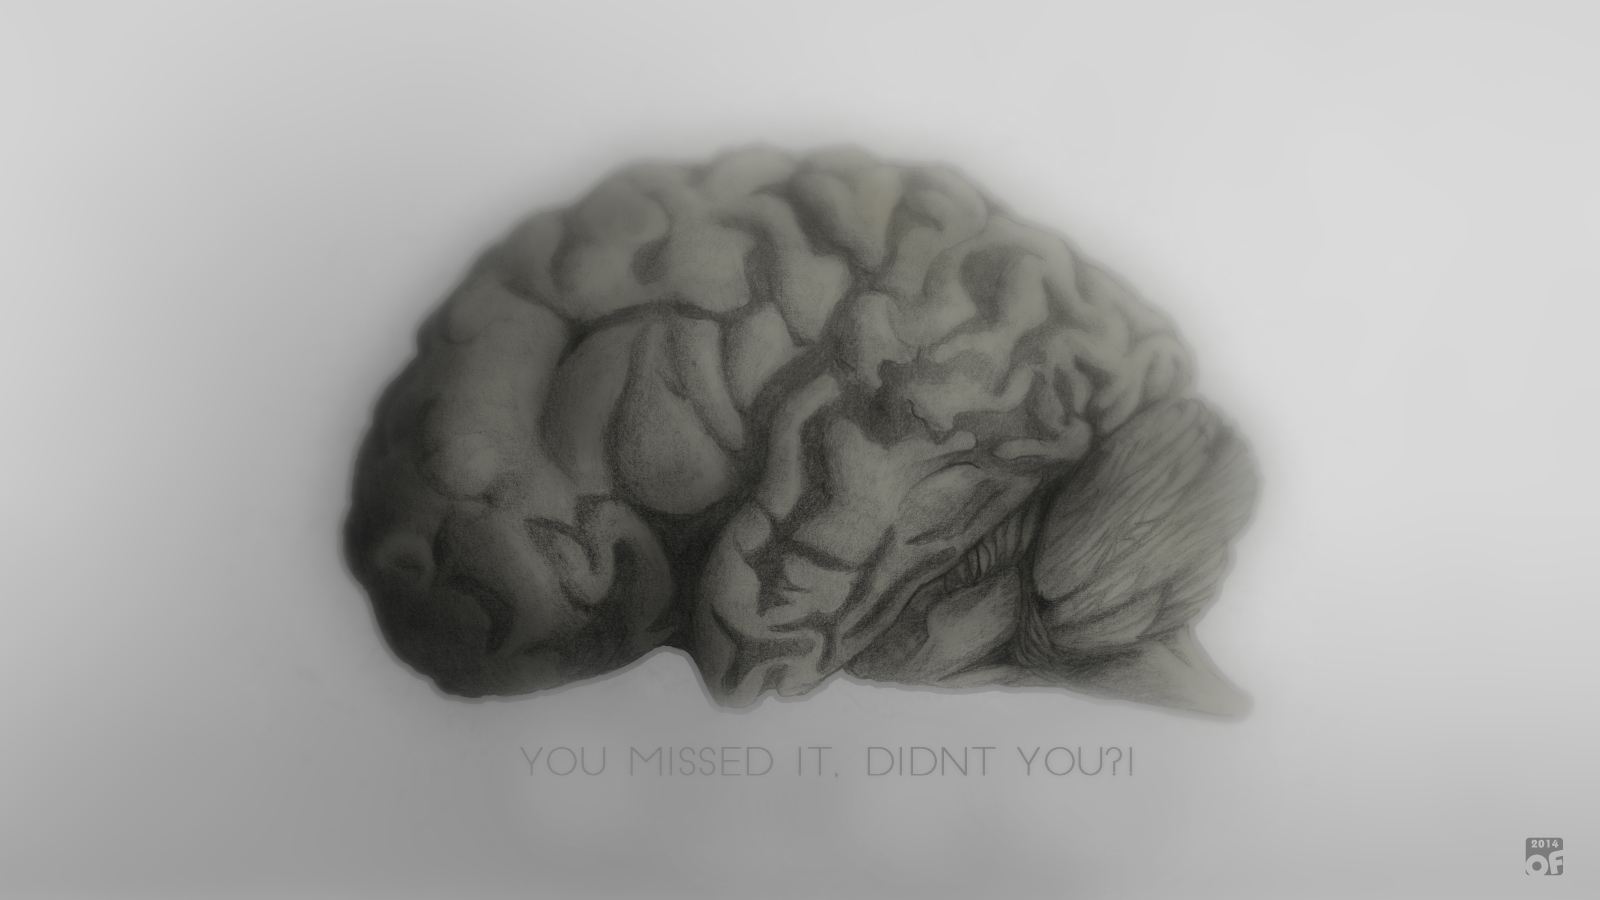 Realistic brain drawing